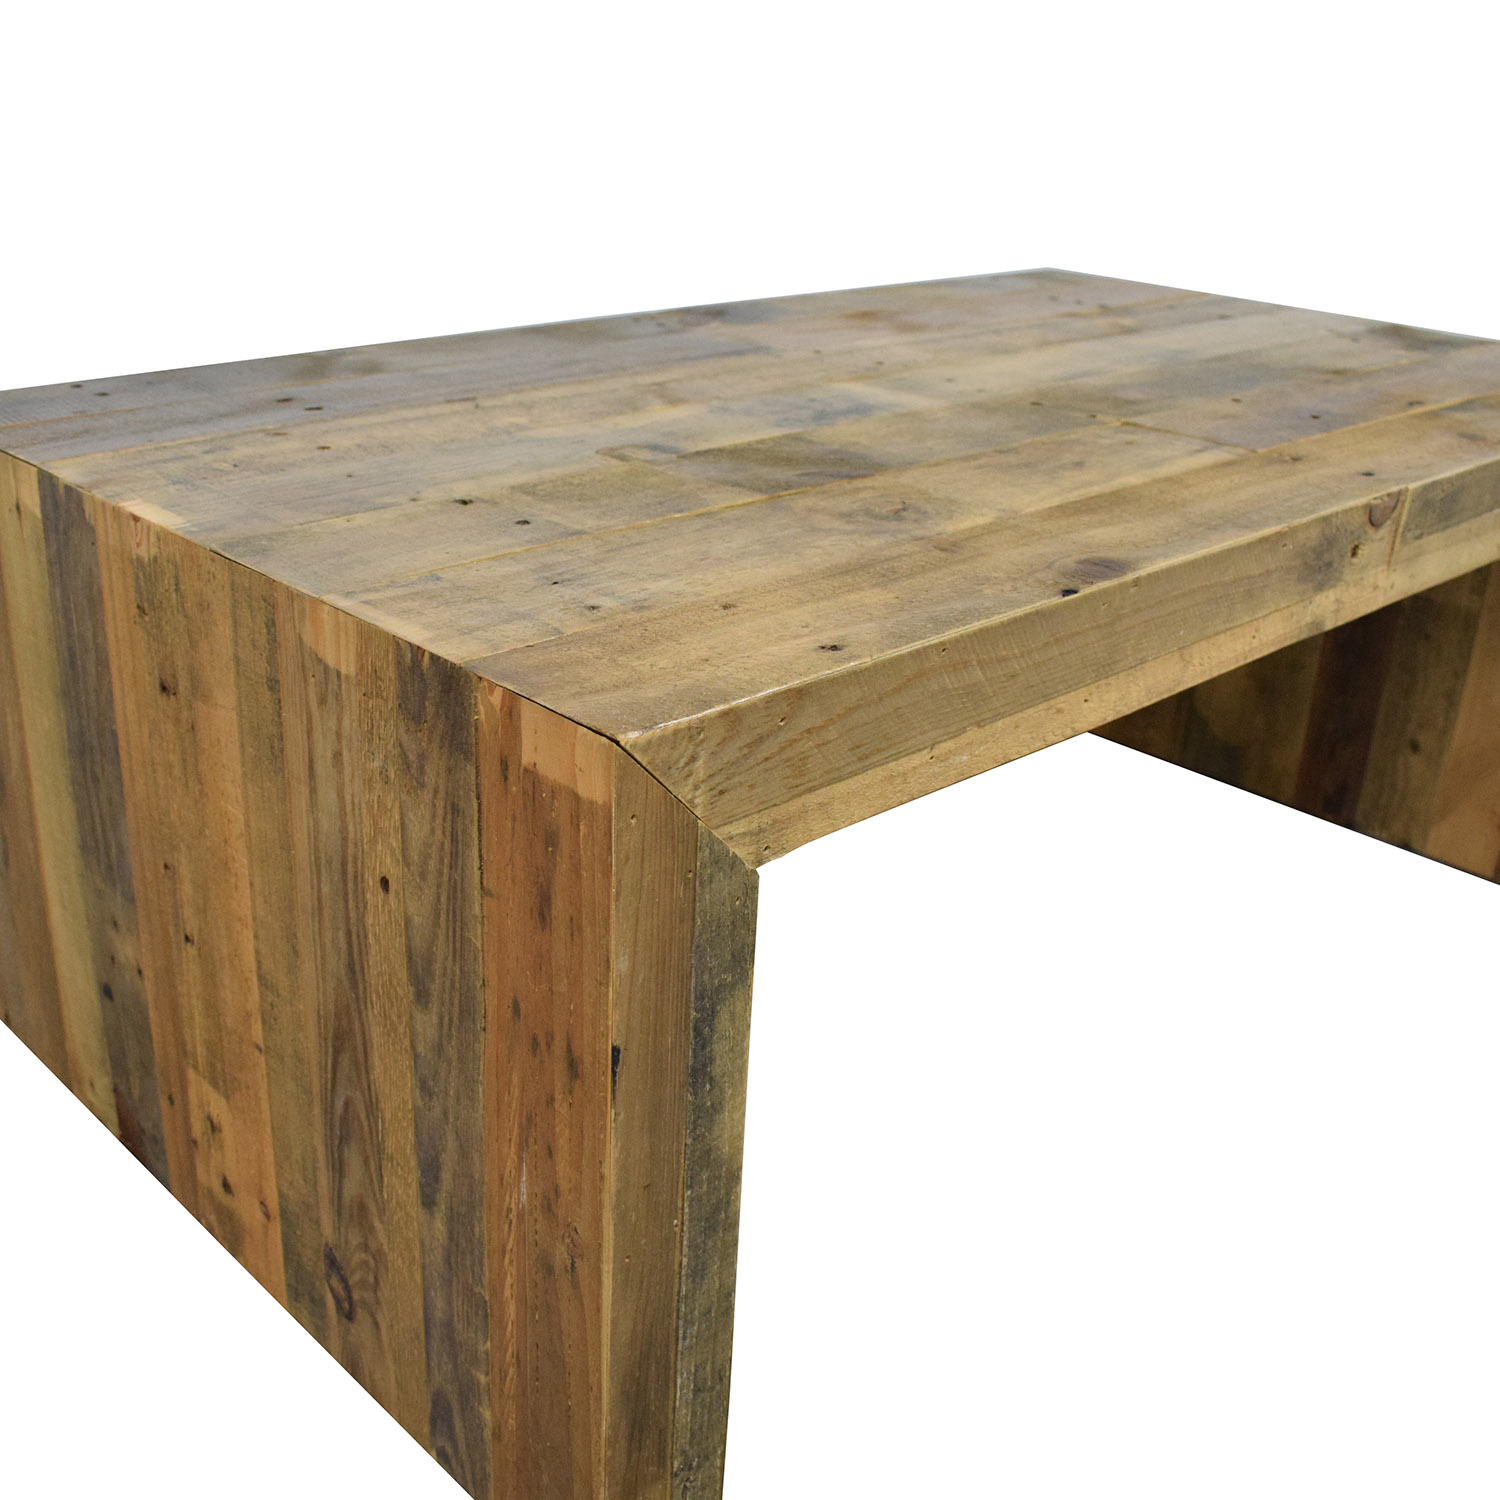 West Elm West Elm Emmerson Reclaimed Coffee Table on sale